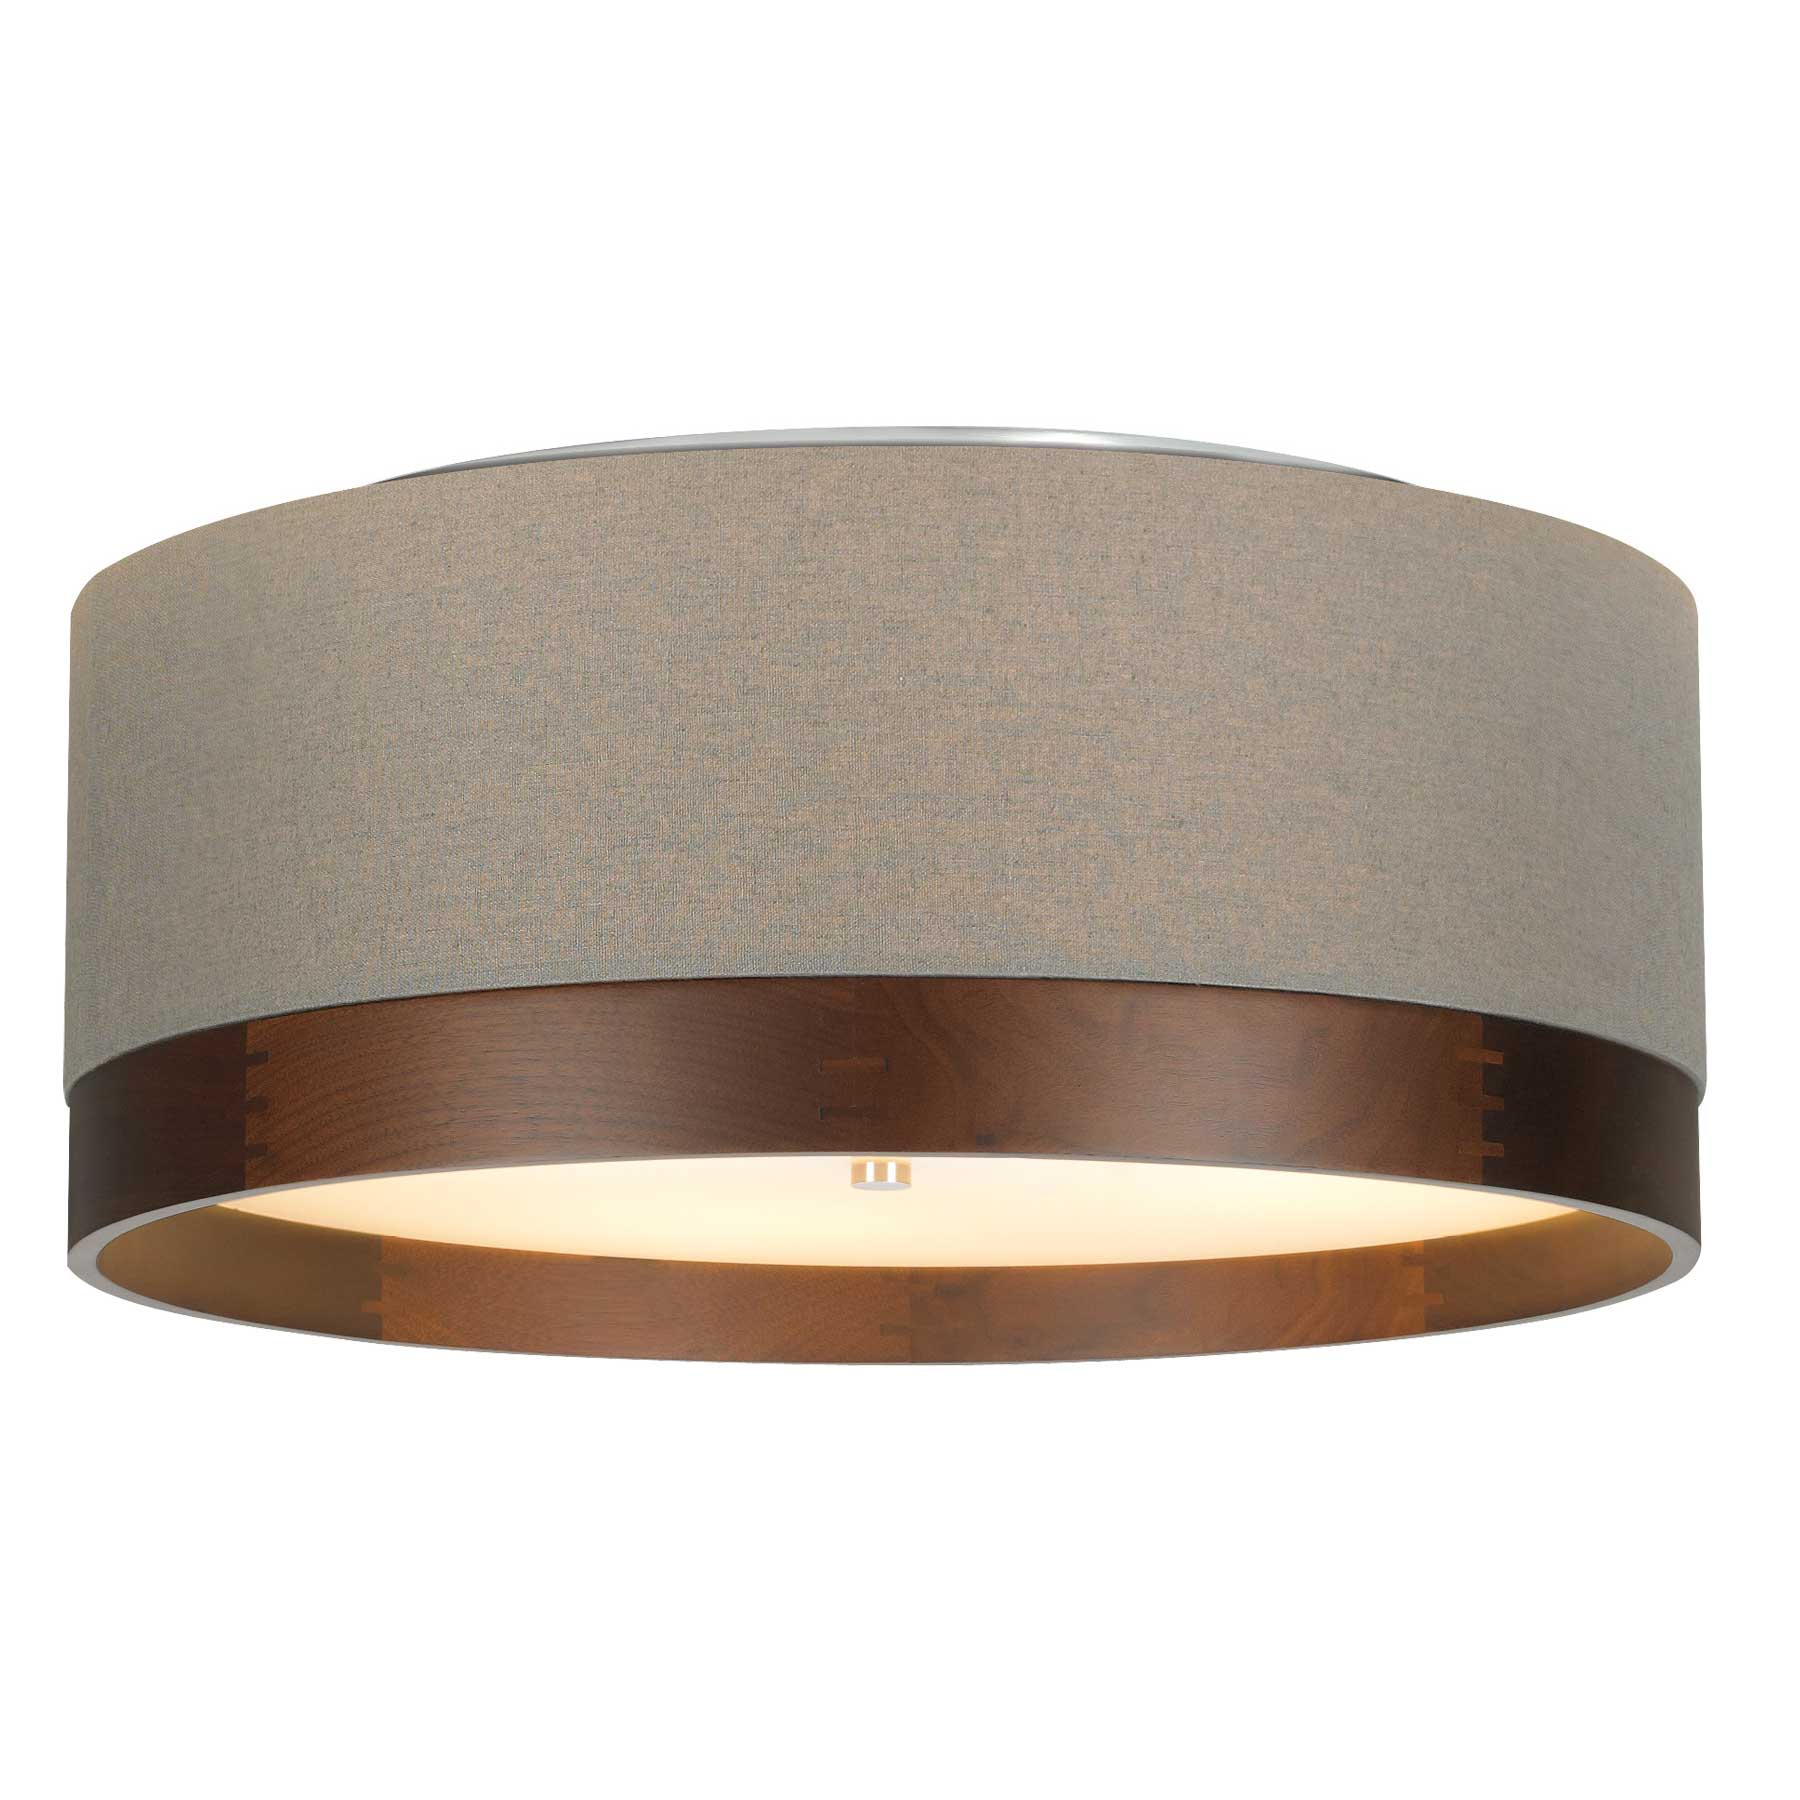 Flush Mount Kitchen Light Flush Mount Ceiling Light By Tech Lighting 700fmtpoyws